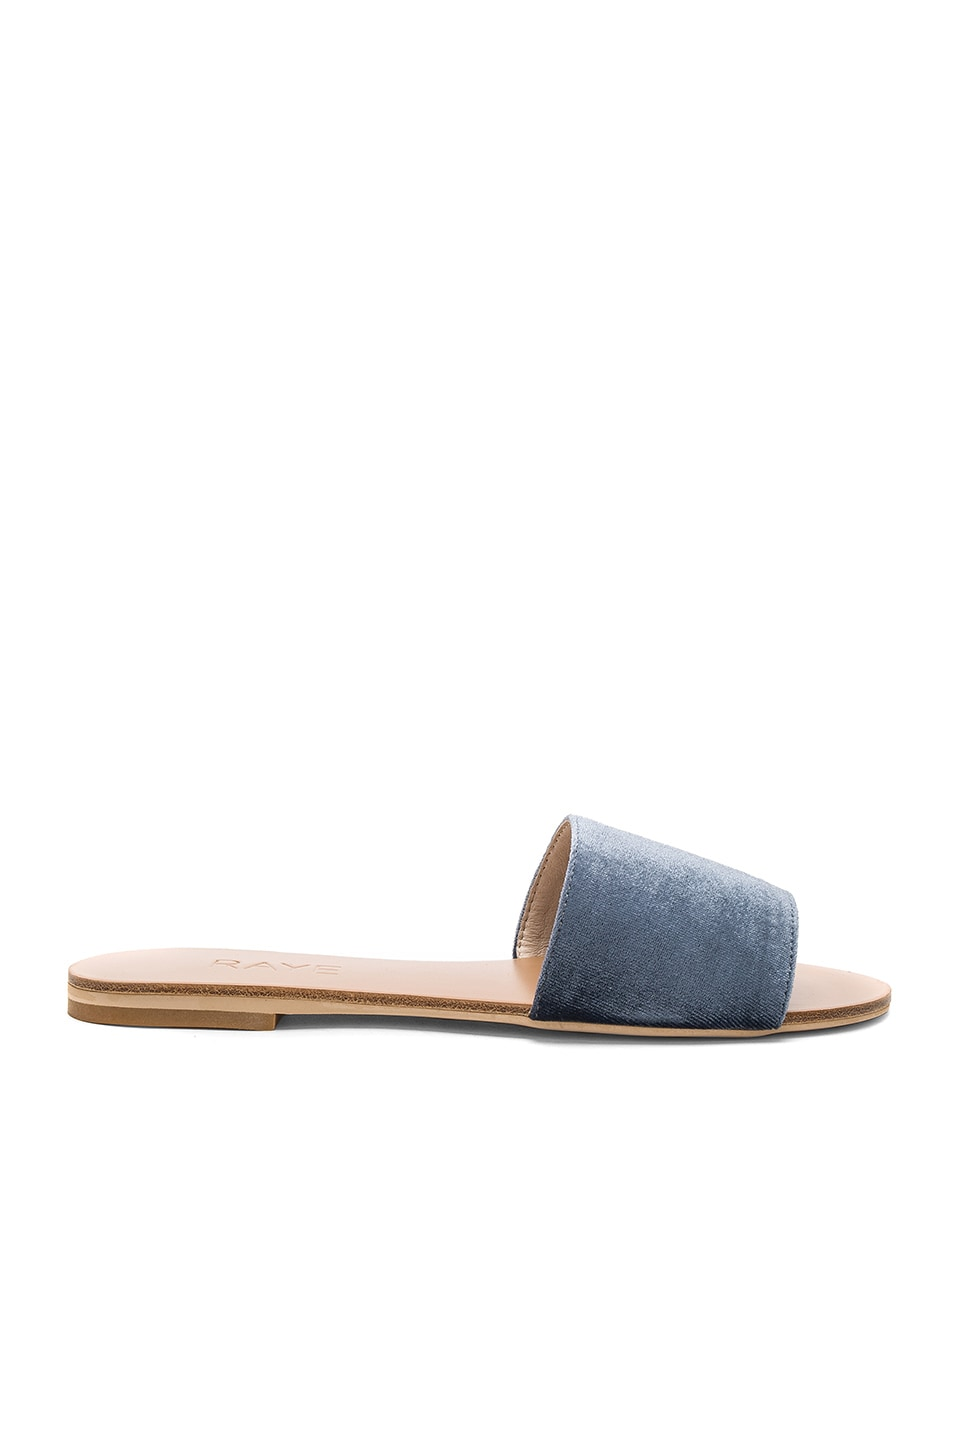 RAYE x REVOLVE Sari Slide in Dusty Blue Velvet